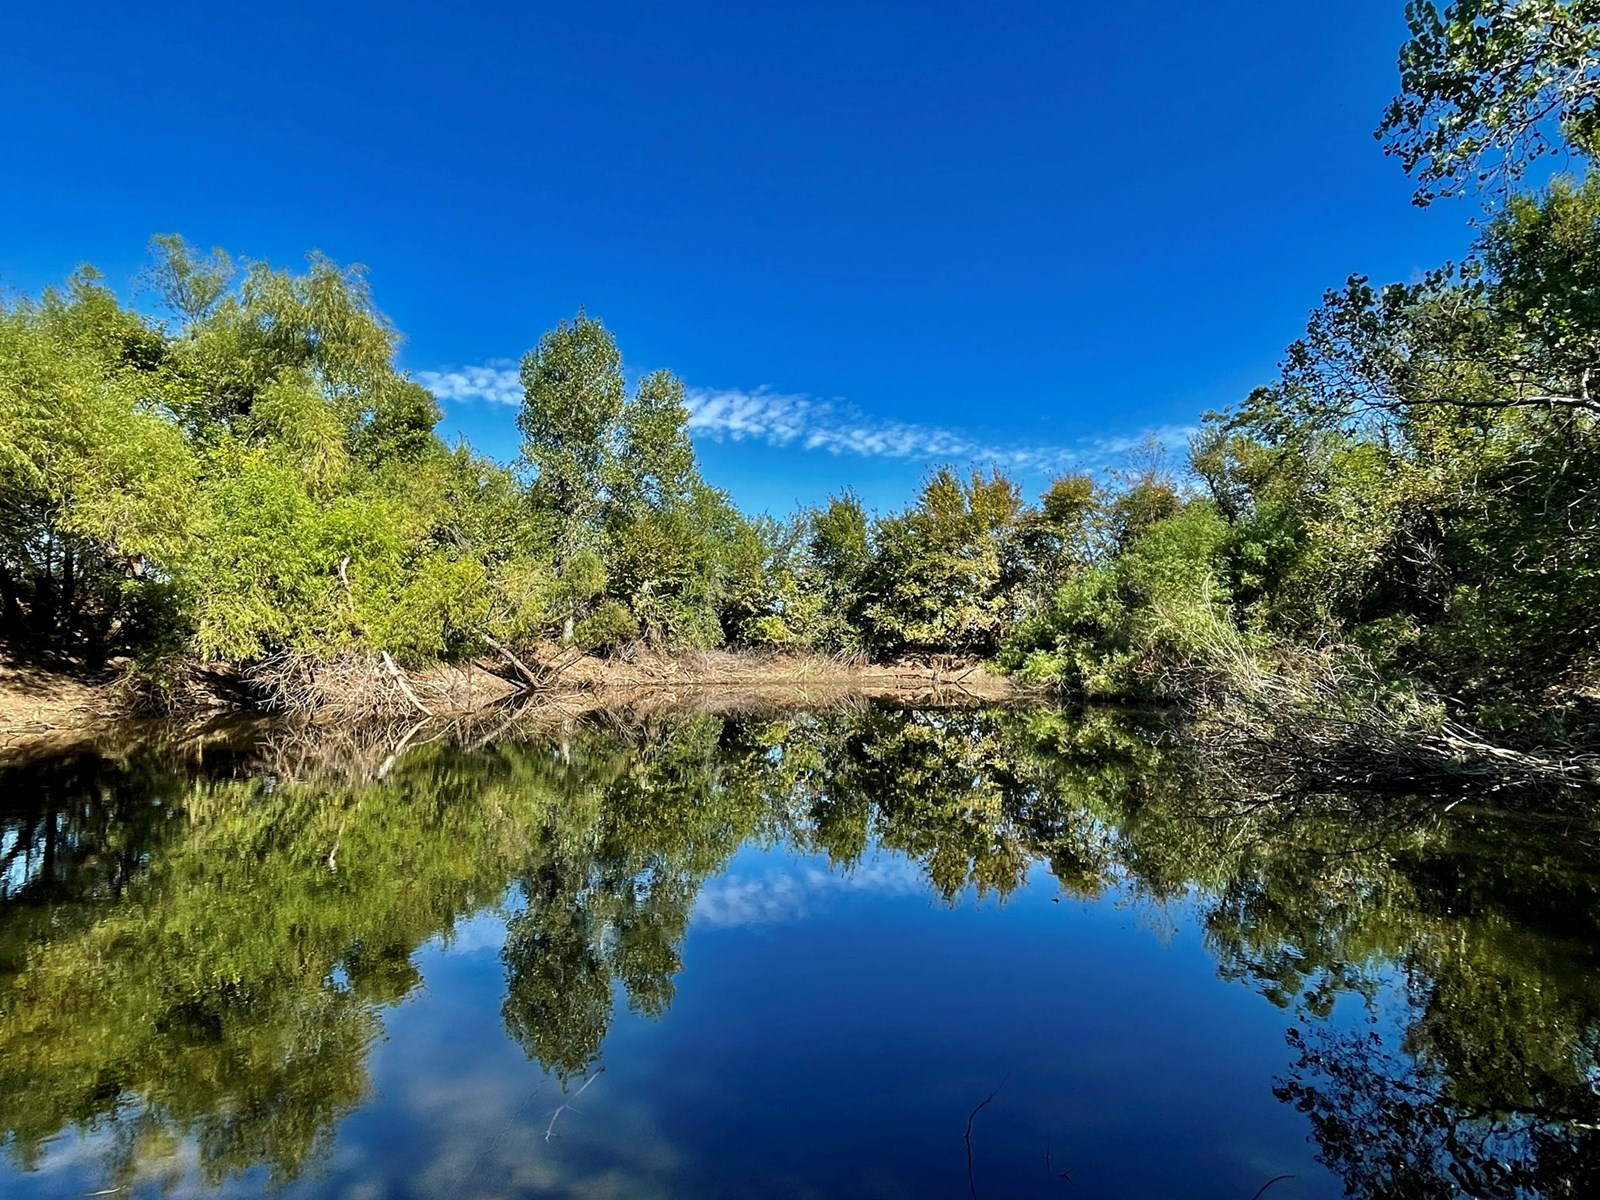 Crescent, OK 12.5 Acres with BEAUTIFUL POND